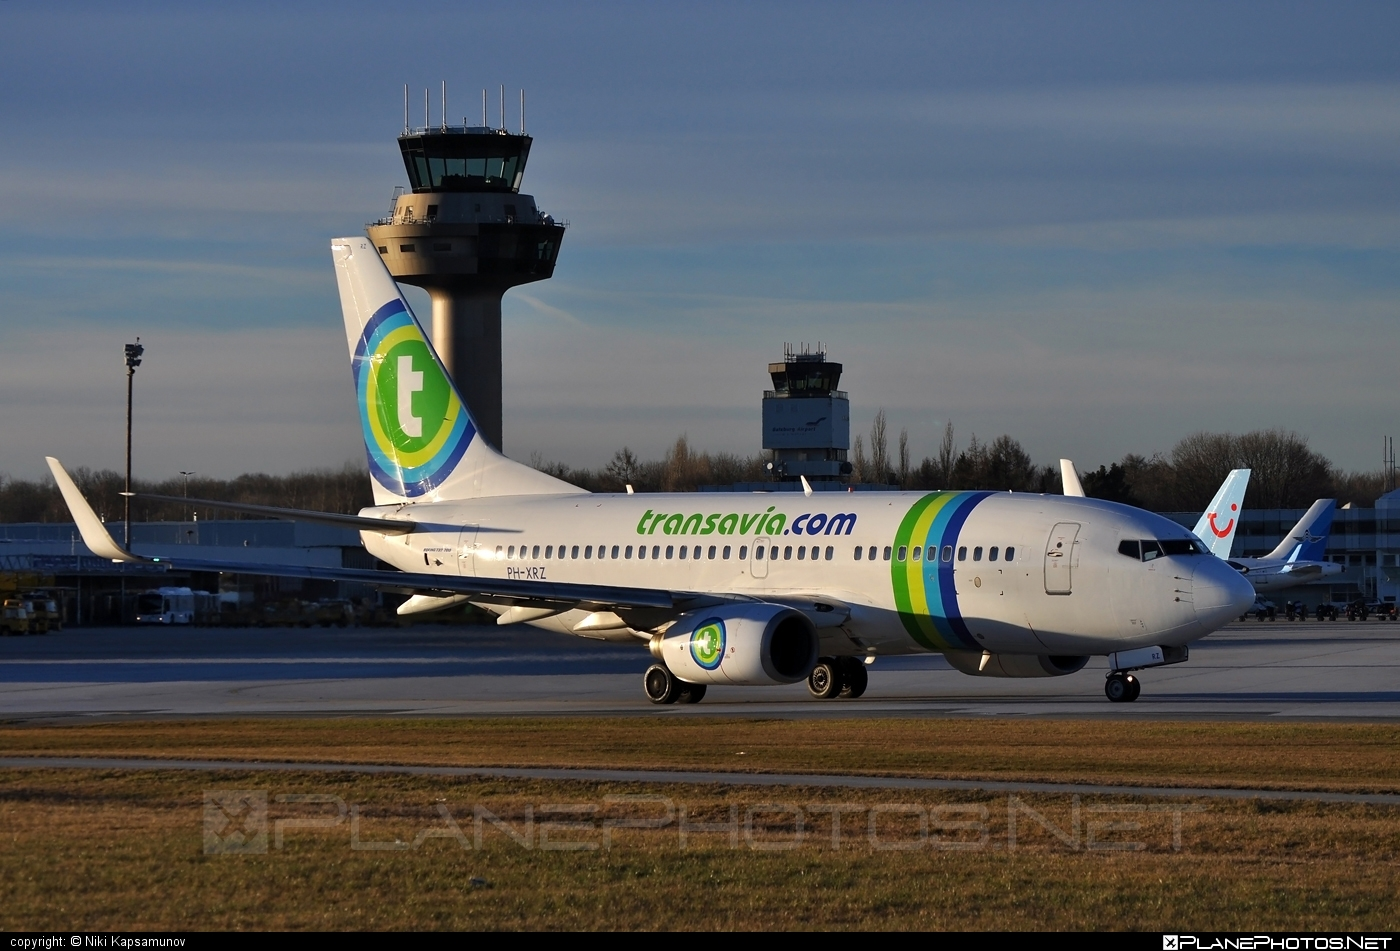 Boeing 737-700 - PH-XRZ operated by Transavia Airlines #b737 #b737nextgen #b737ng #boeing #boeing737 #transavia #transaviaairlines